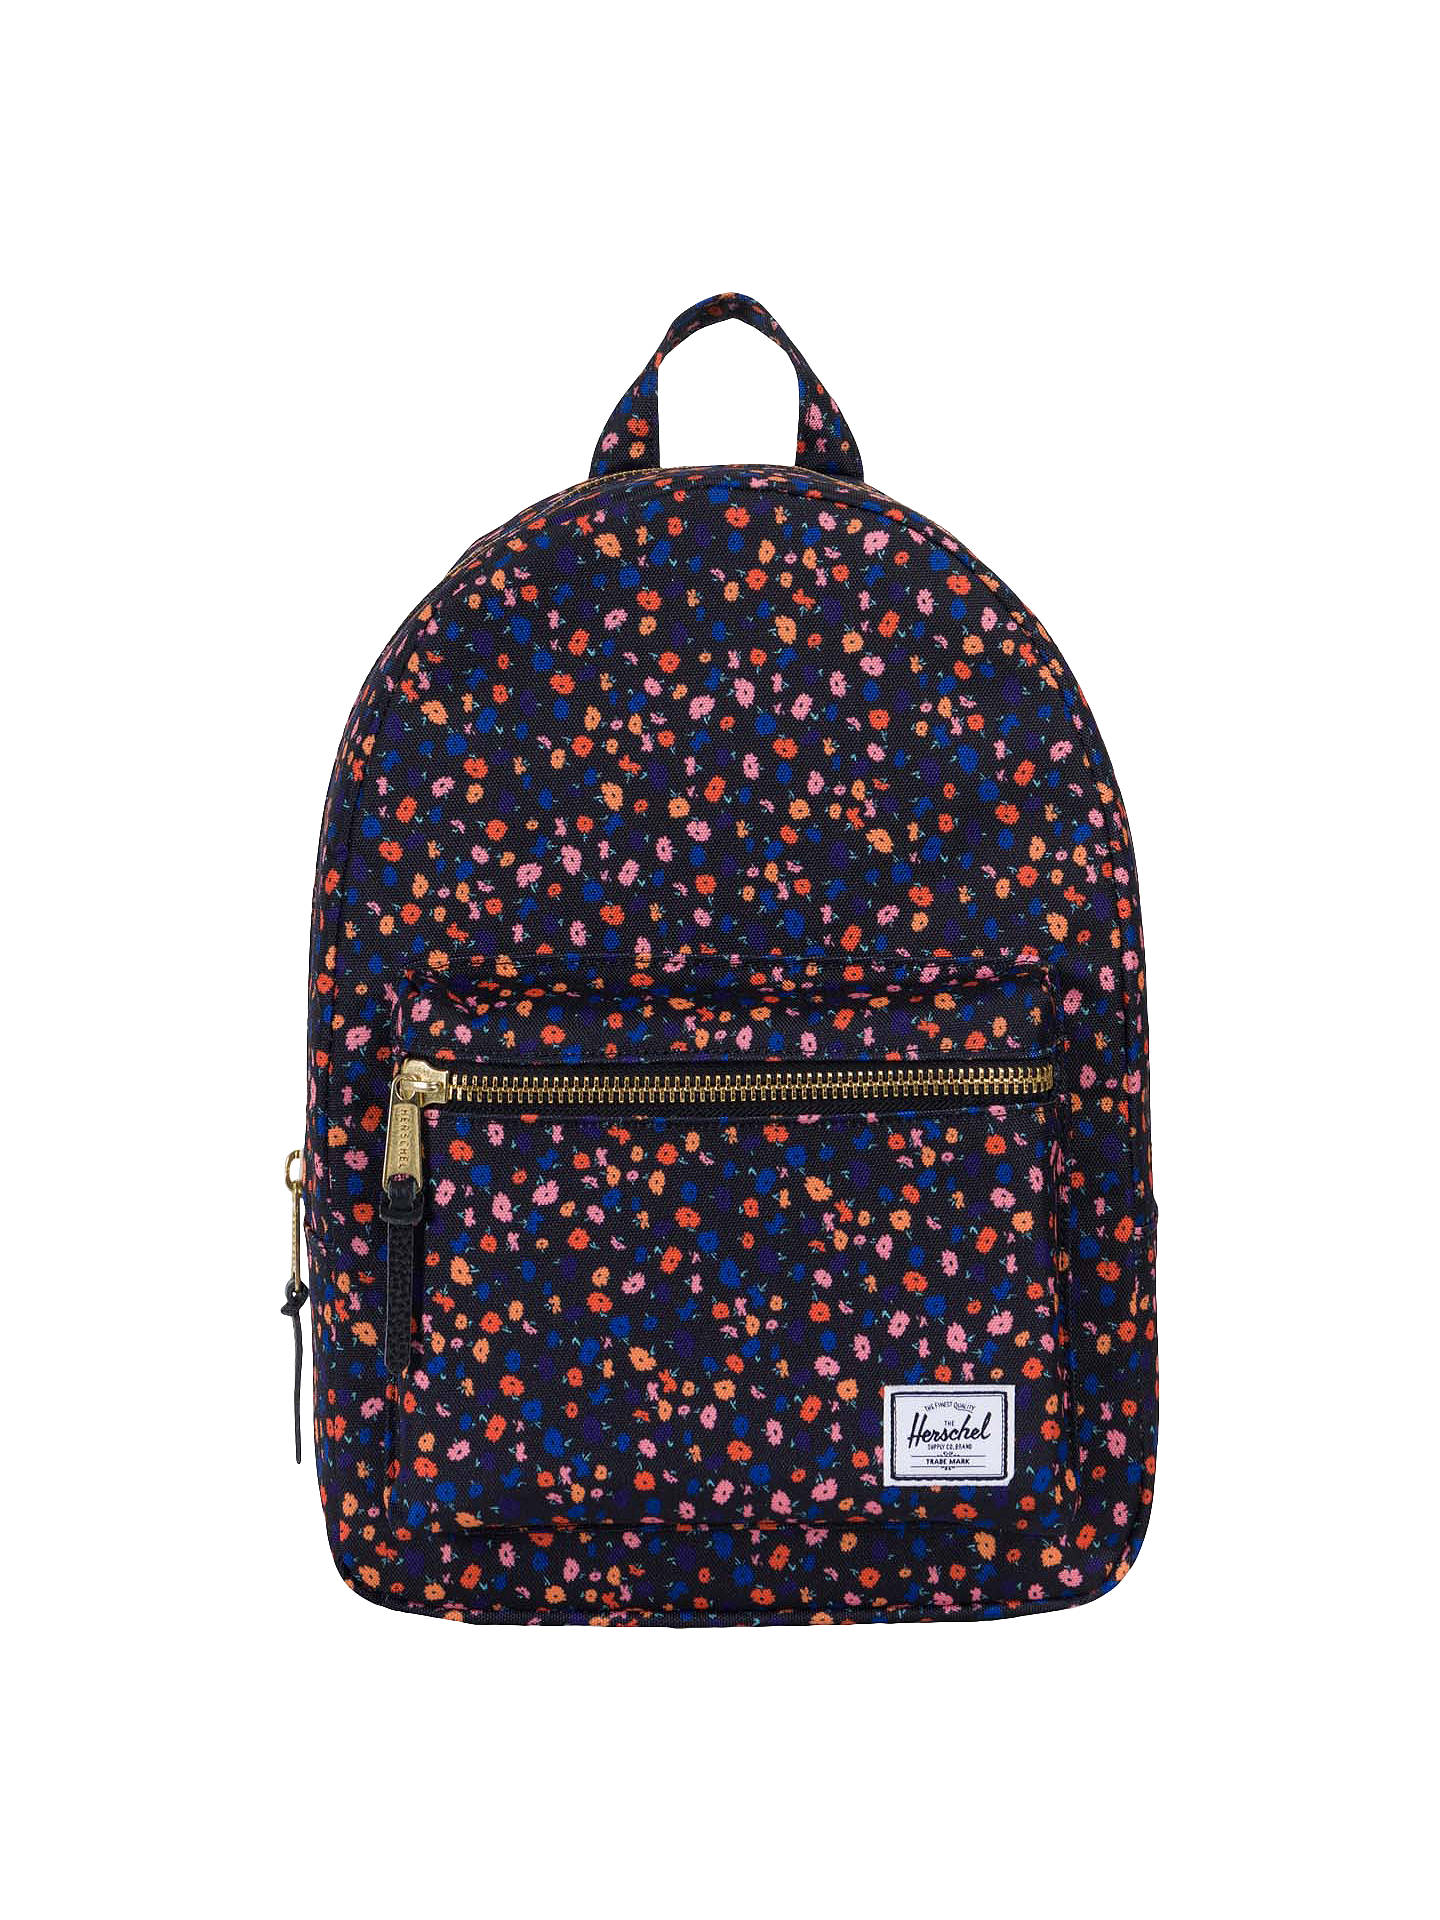 03ef443785c Buy Herschel Supply Co. Grove Backpack